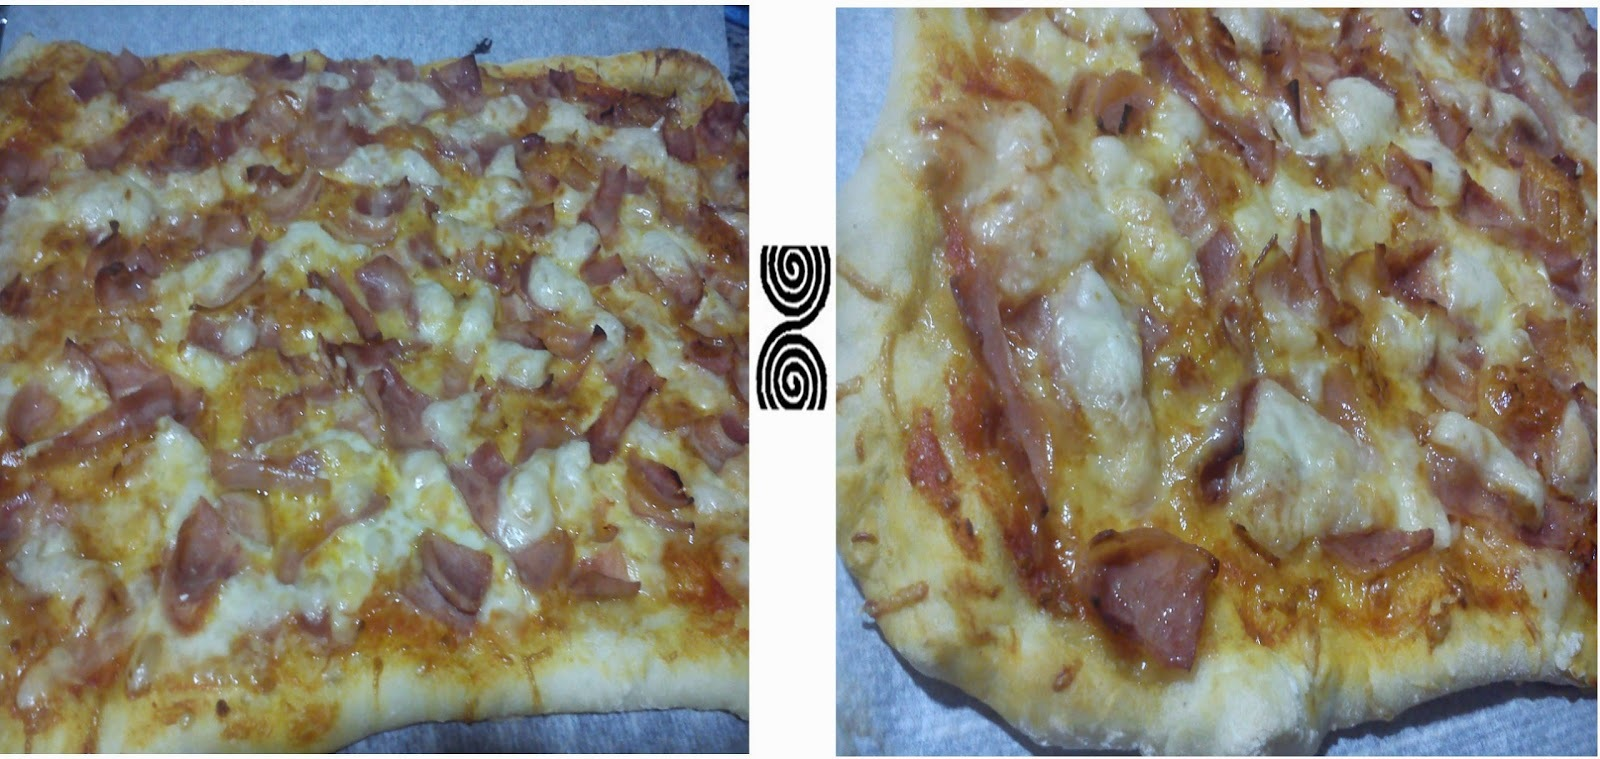 Pizza jamón y bacon